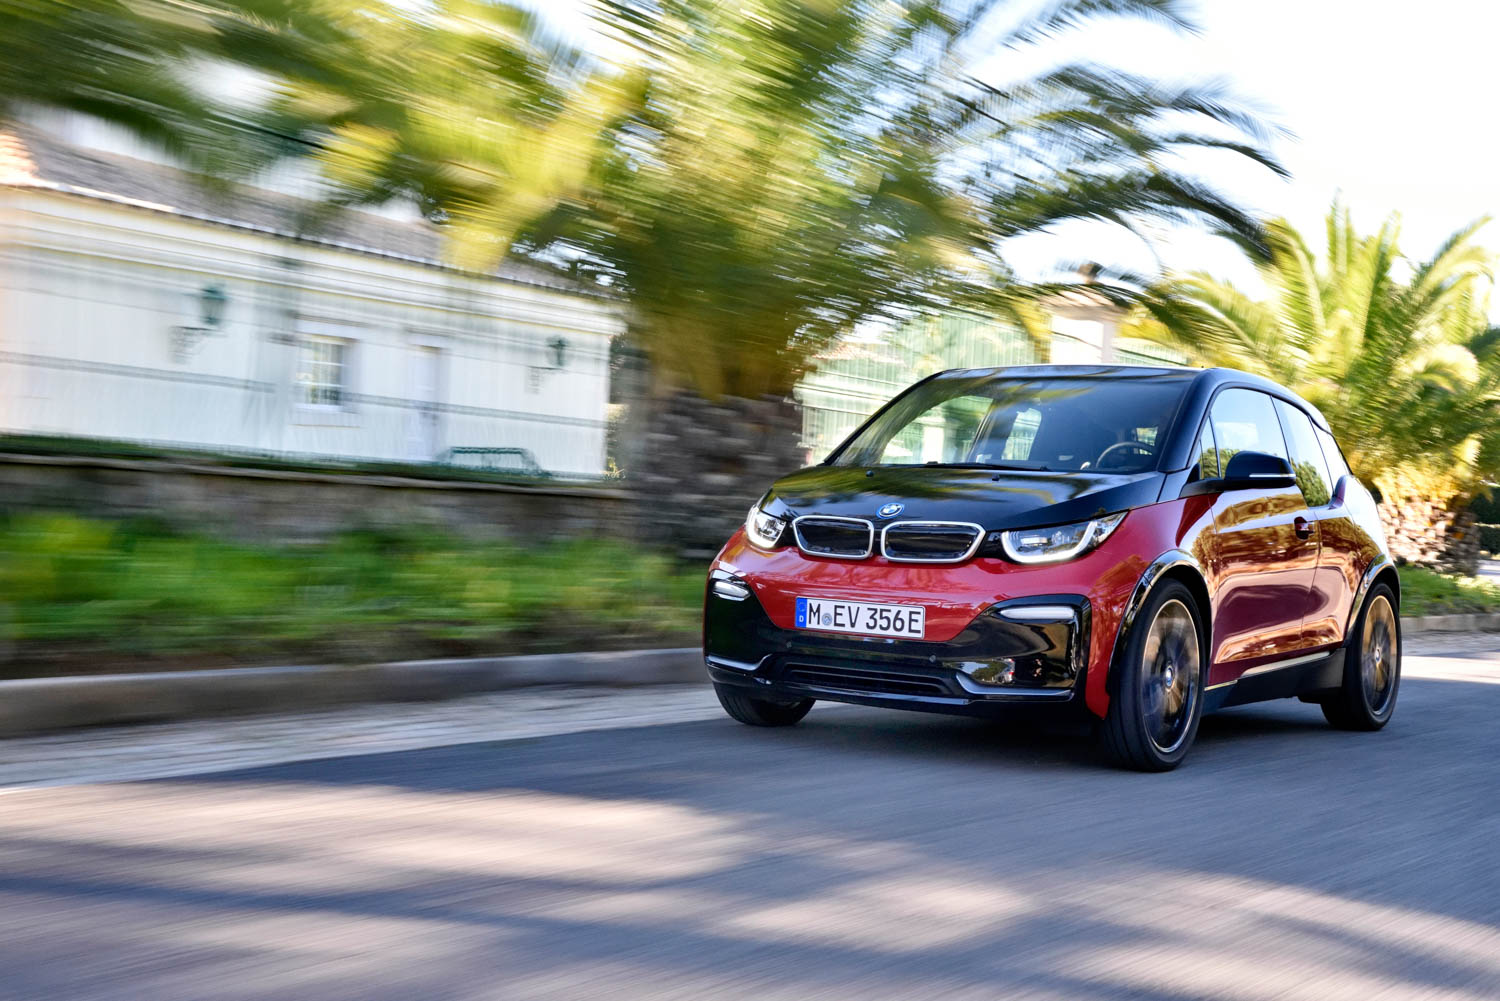 The First-Ever BMW i3s Now Available in Authorised BMW i Dealership.